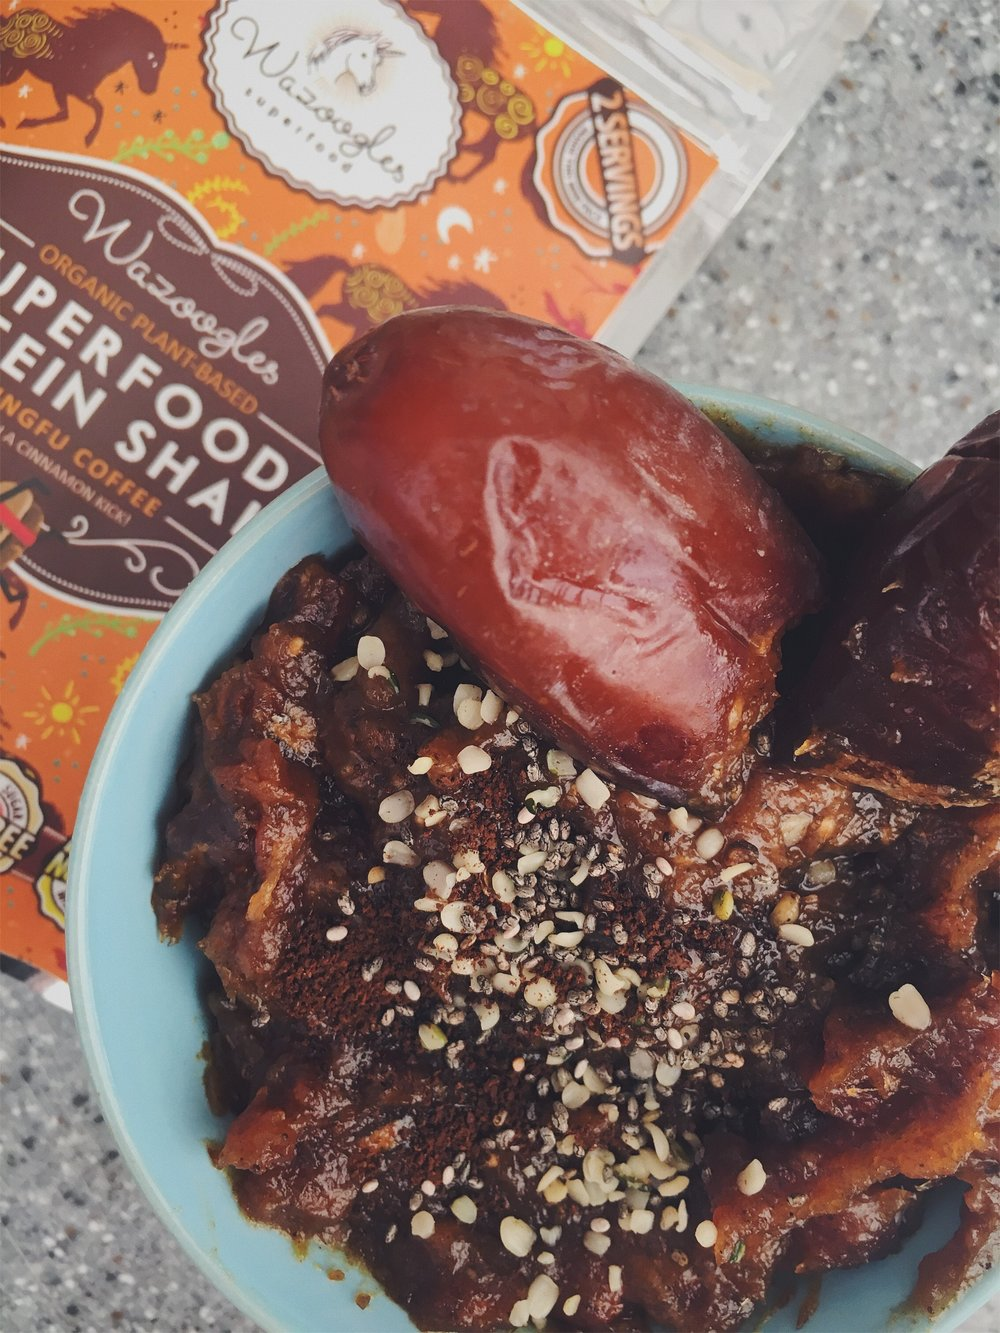 Caramel 2.0 (ie.: With added superfoods).